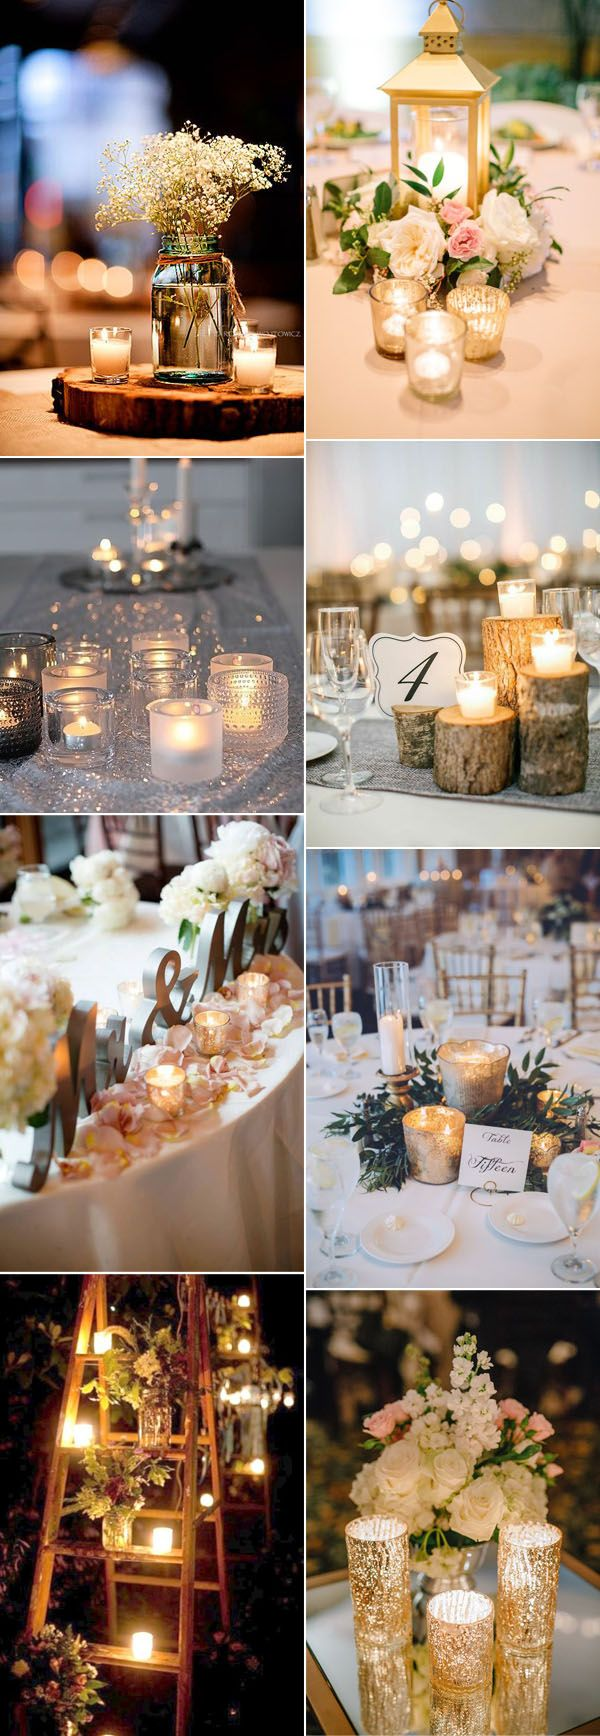 252 best wedding reception table decor idea images on pinterest 50 fancy candlelight ideas to add romance to your weddings junglespirit Choice Image